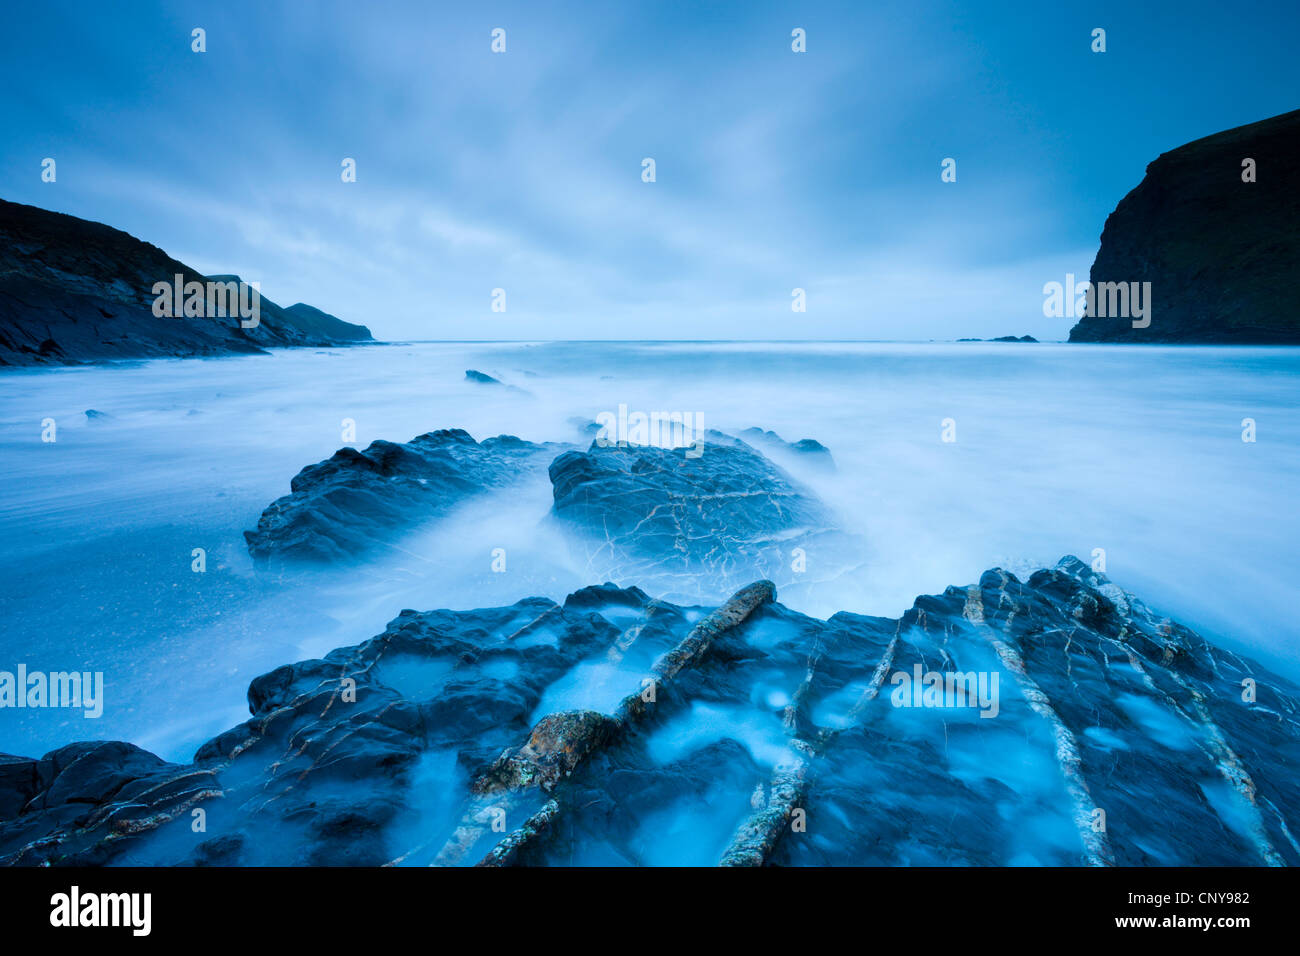 Long exposure at twilight on Crackington Haven beach on North Cornwall, England. March 2009 - Stock Image